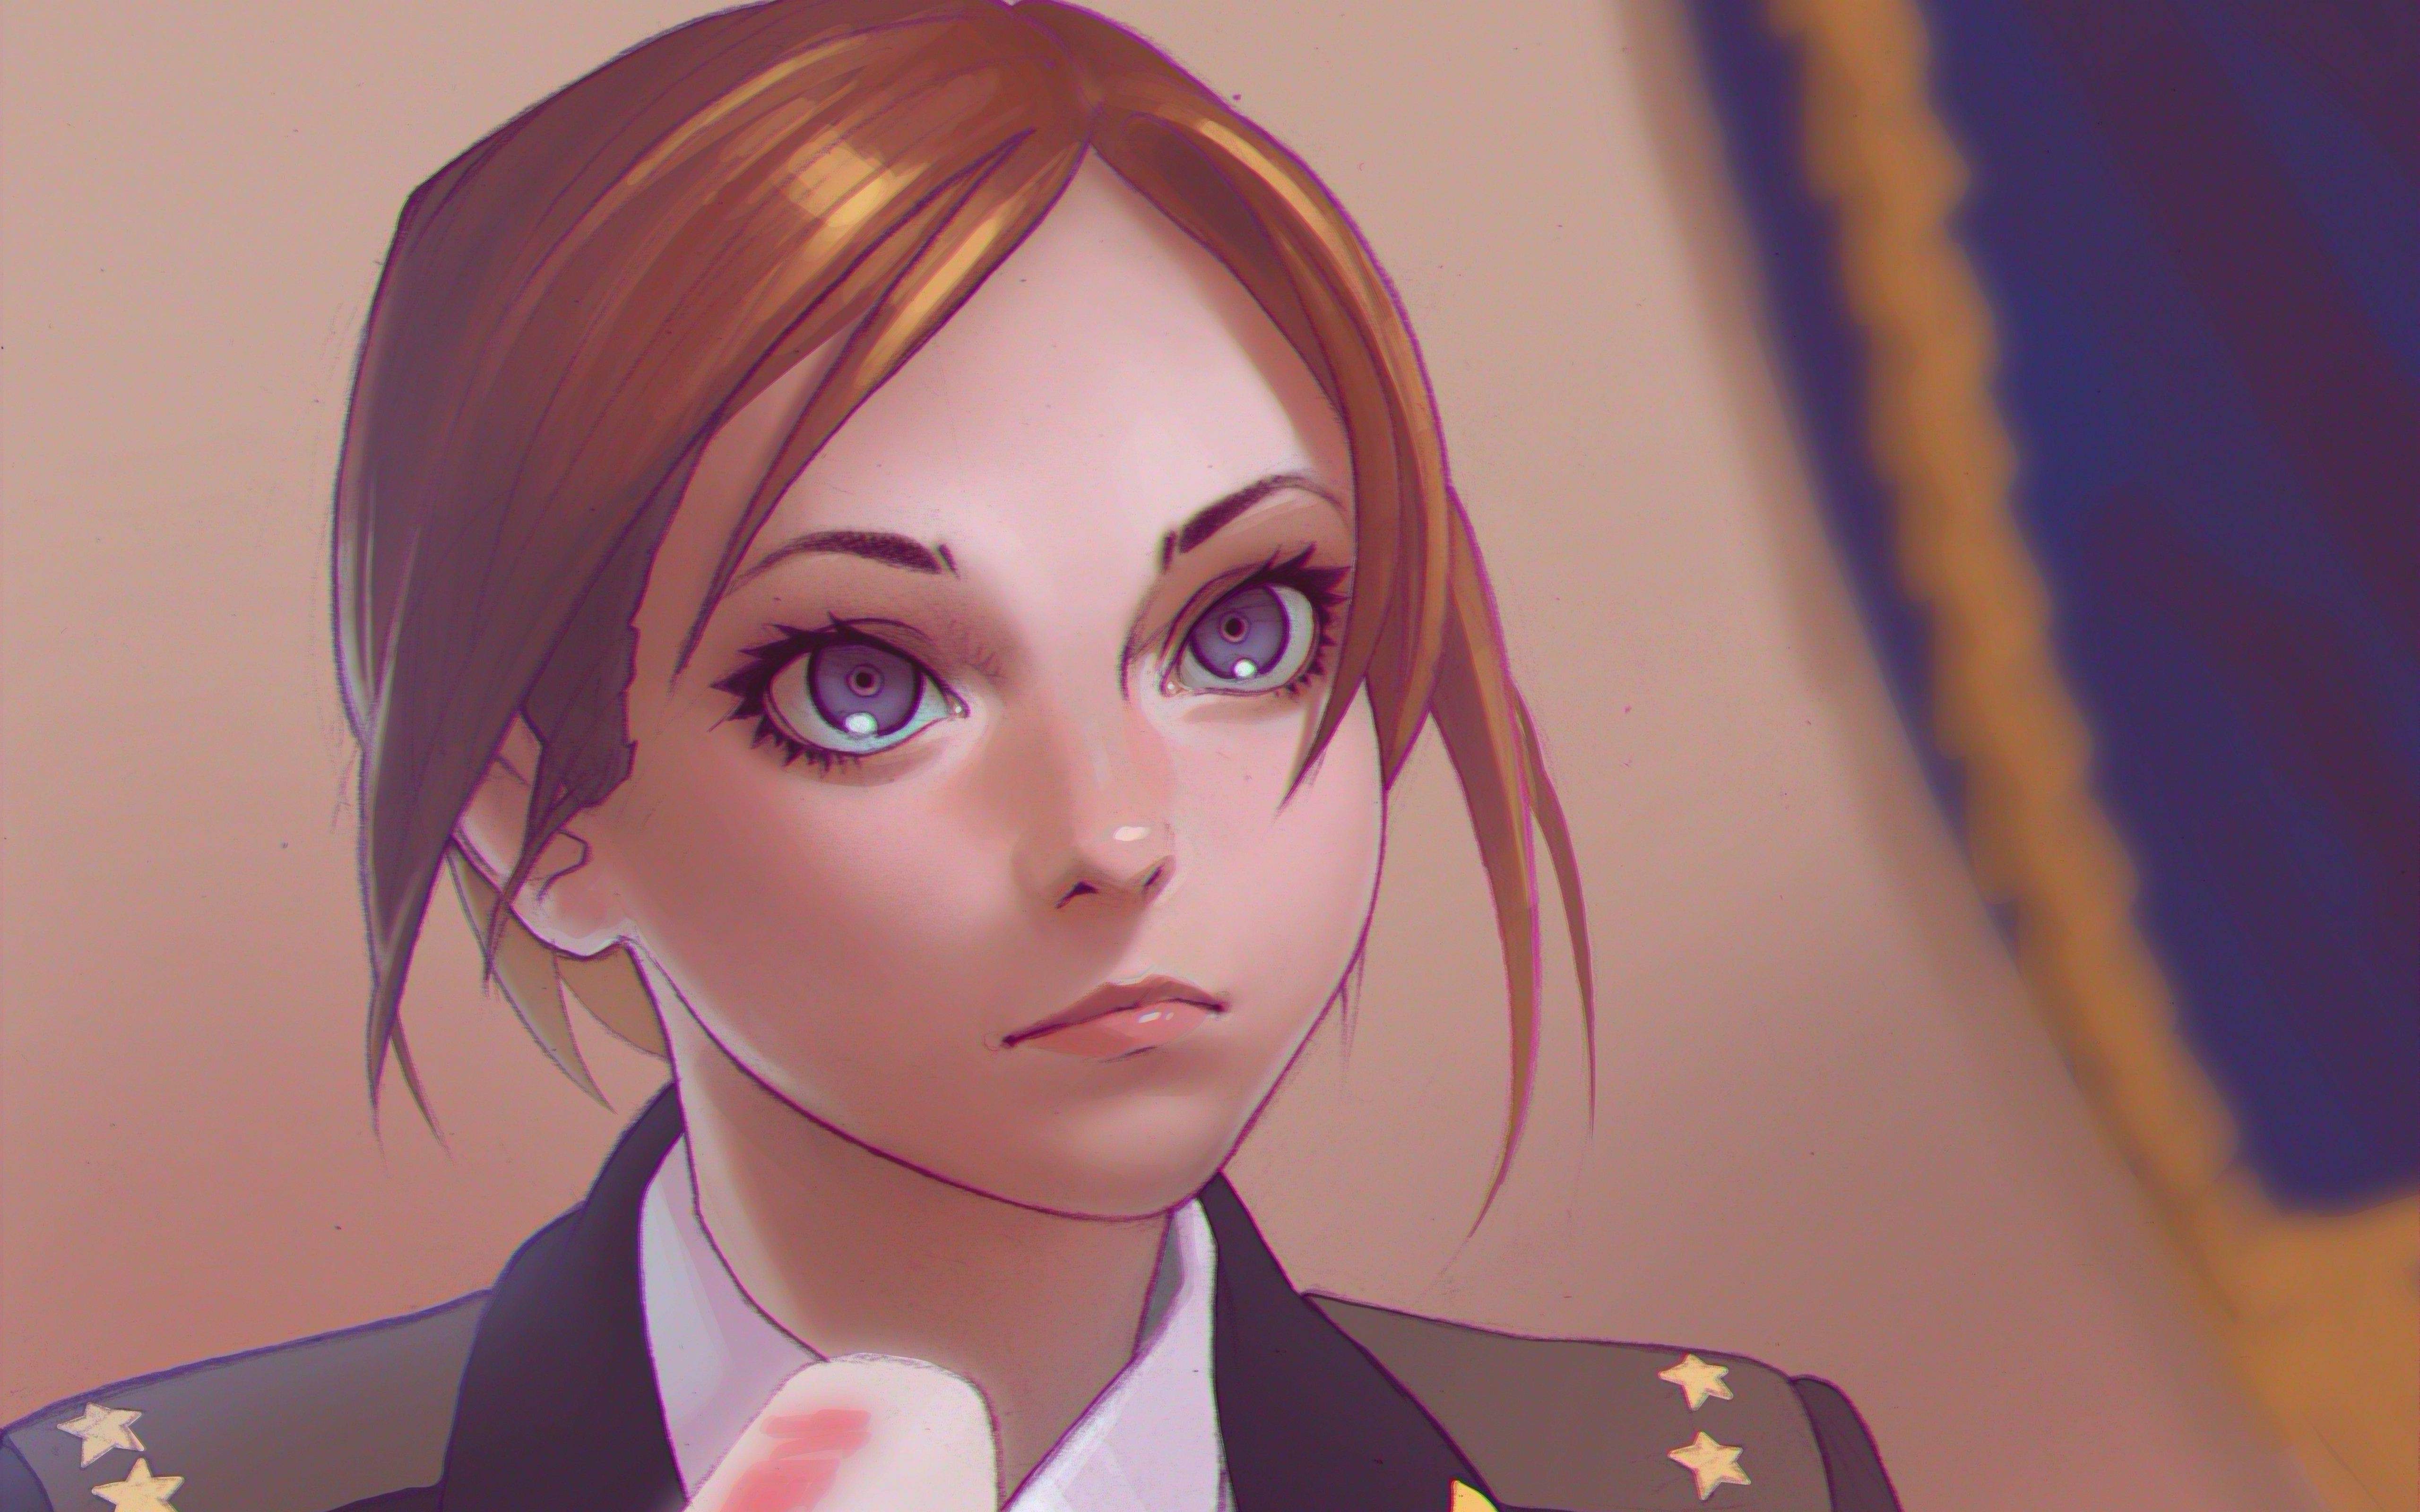 Natalia Poklonskaya Photos and Images Gallery May. 15